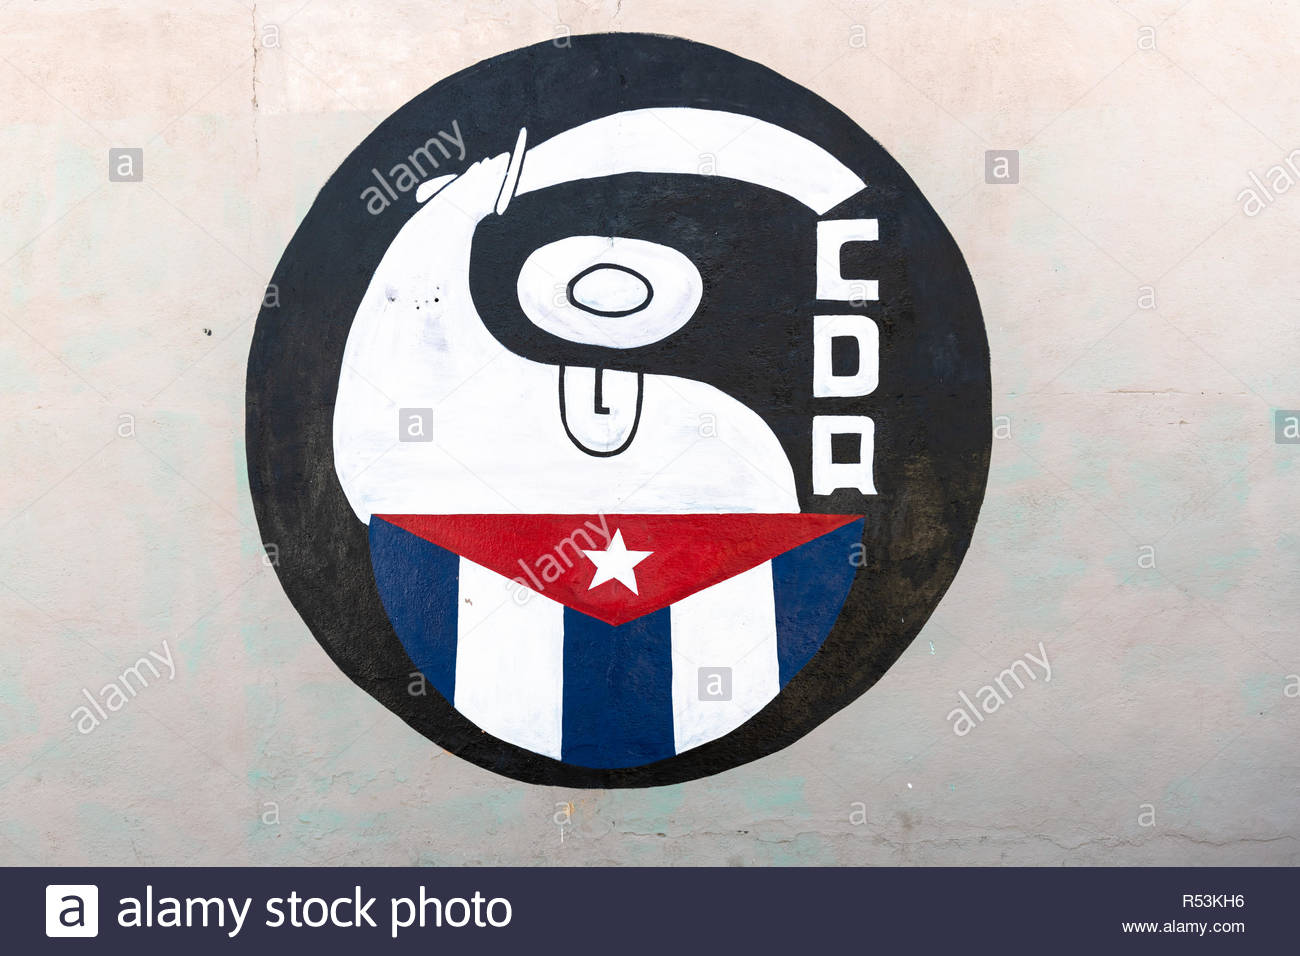 Santa Clara, Villa Clara, Cuba-November 4, 2018:  'CDR' logo or sign painted on a wall. The acronym stands for Committee for the Defense of the Revolu - Stock Image